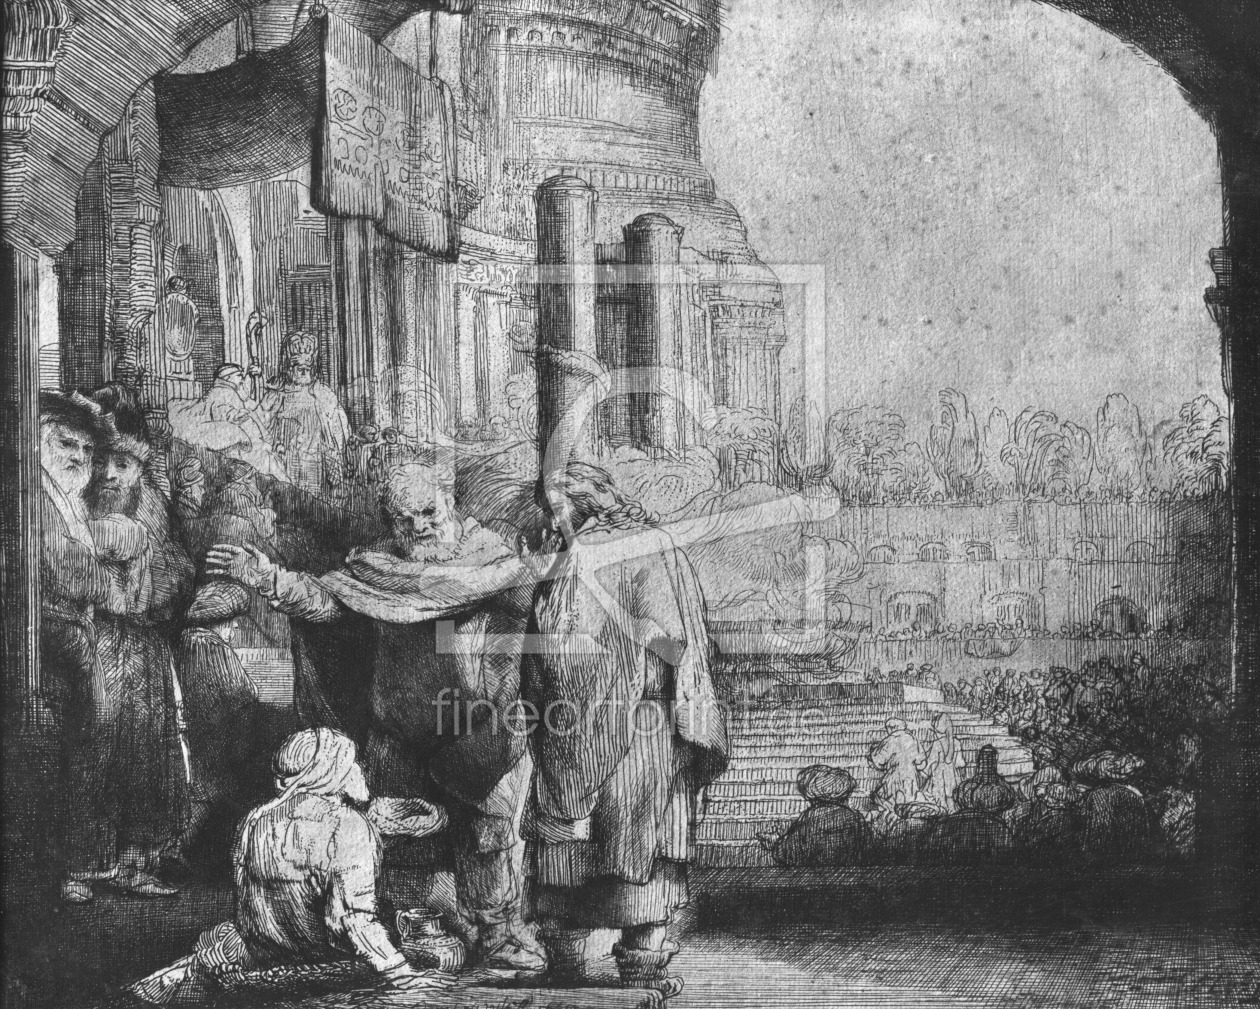 Bild-Nr.: 31001048 St. Peter and St. John at the Entrance to the Temple, 1649 erstellt von Rembrandt Harmenszoon van Rijn